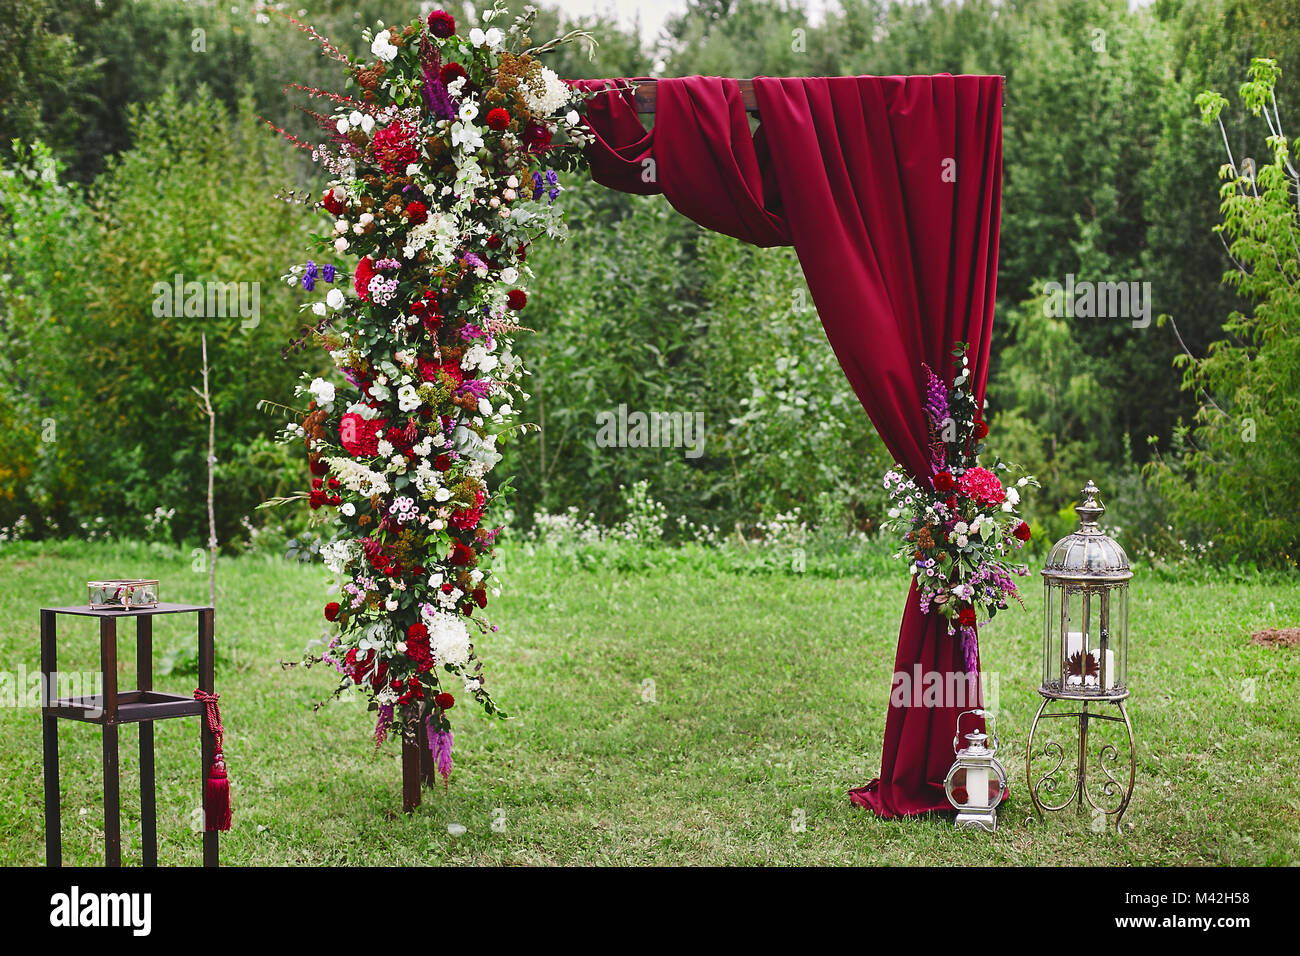 Wedding Arch With Vinous Curtain And Fresh Flowers Outdoors